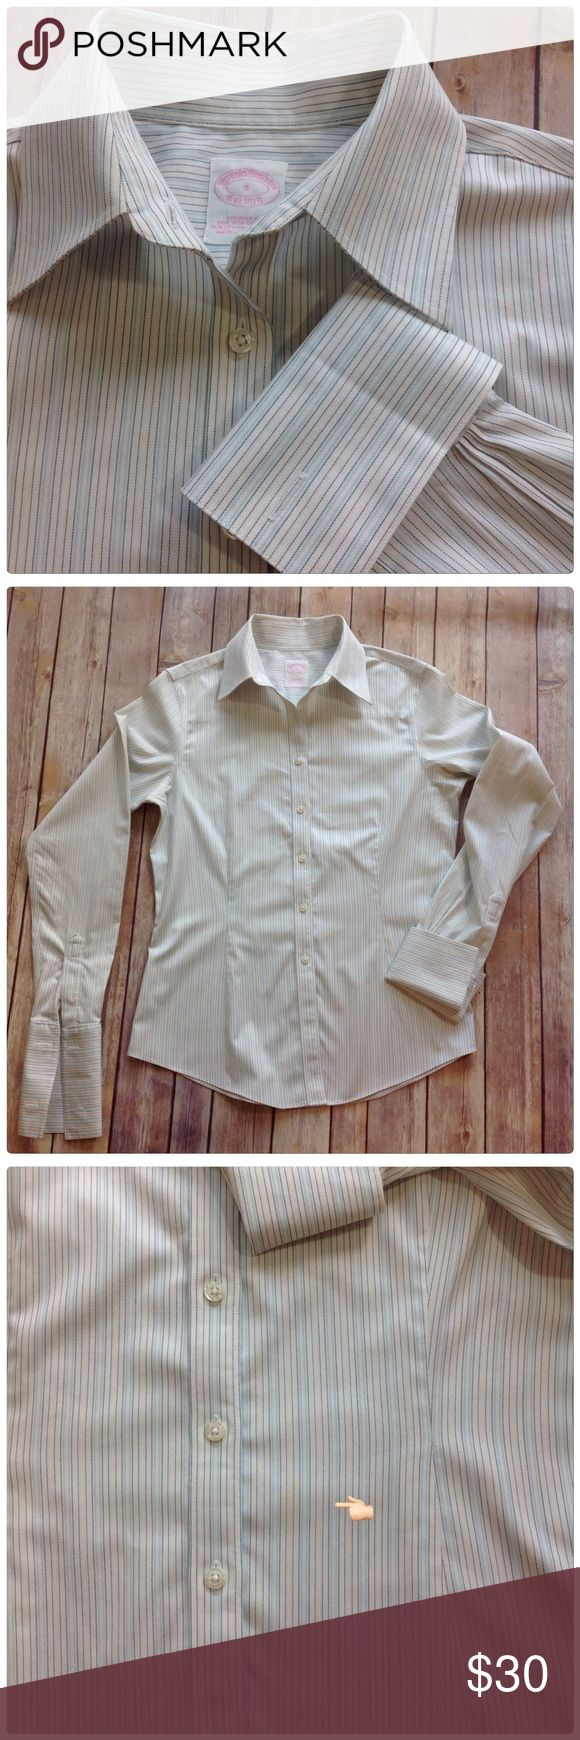 """BROOKS BROTHERS NON IRON SHIRT Tailored fit non iron stretch. Cotton with 4% Lastol light and dark blue pinstripes on white. The material ha a slight chintz the sheen. 18.5"""" at chest 16.5 at waist   Just wash dry and hang always come out crisp and wrinkle free. Excellent condition one light stain on lower front but it is very hard to find or see, below waist line. See last picture. Brooks Brothers Tops Button Down Shirts"""